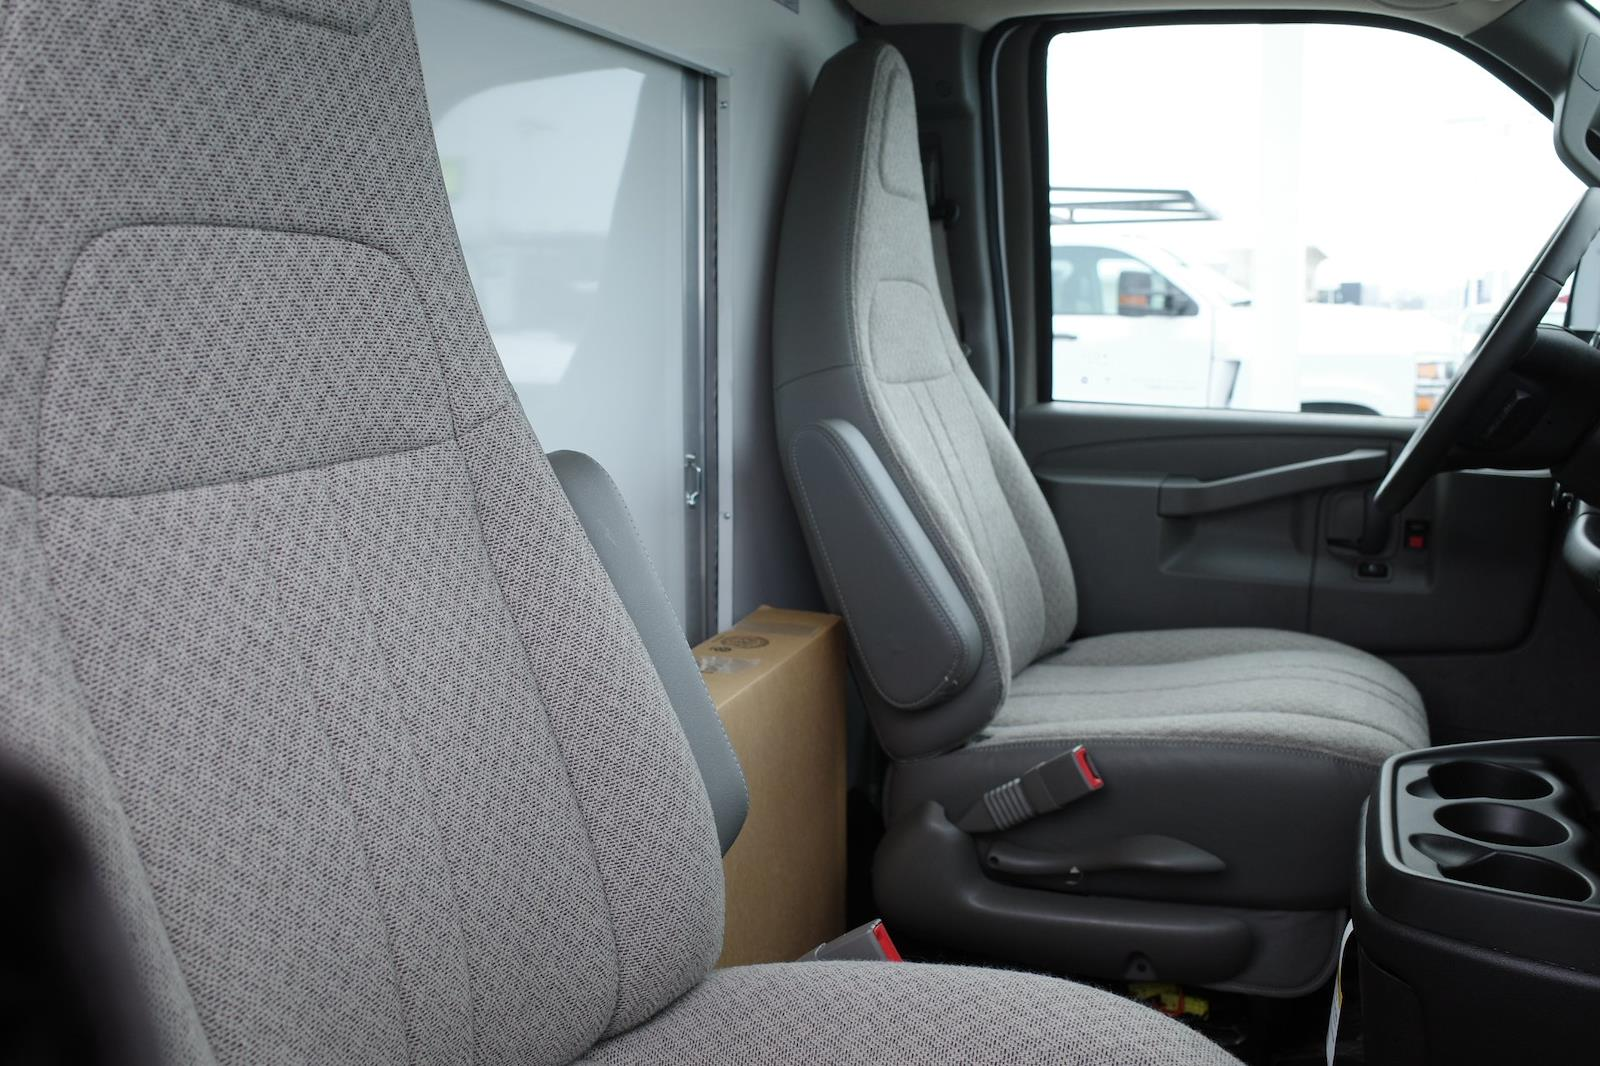 2020 GMC Savana 3500 4x2, Bay Bridge Cutaway Van #LTT278 - photo 13